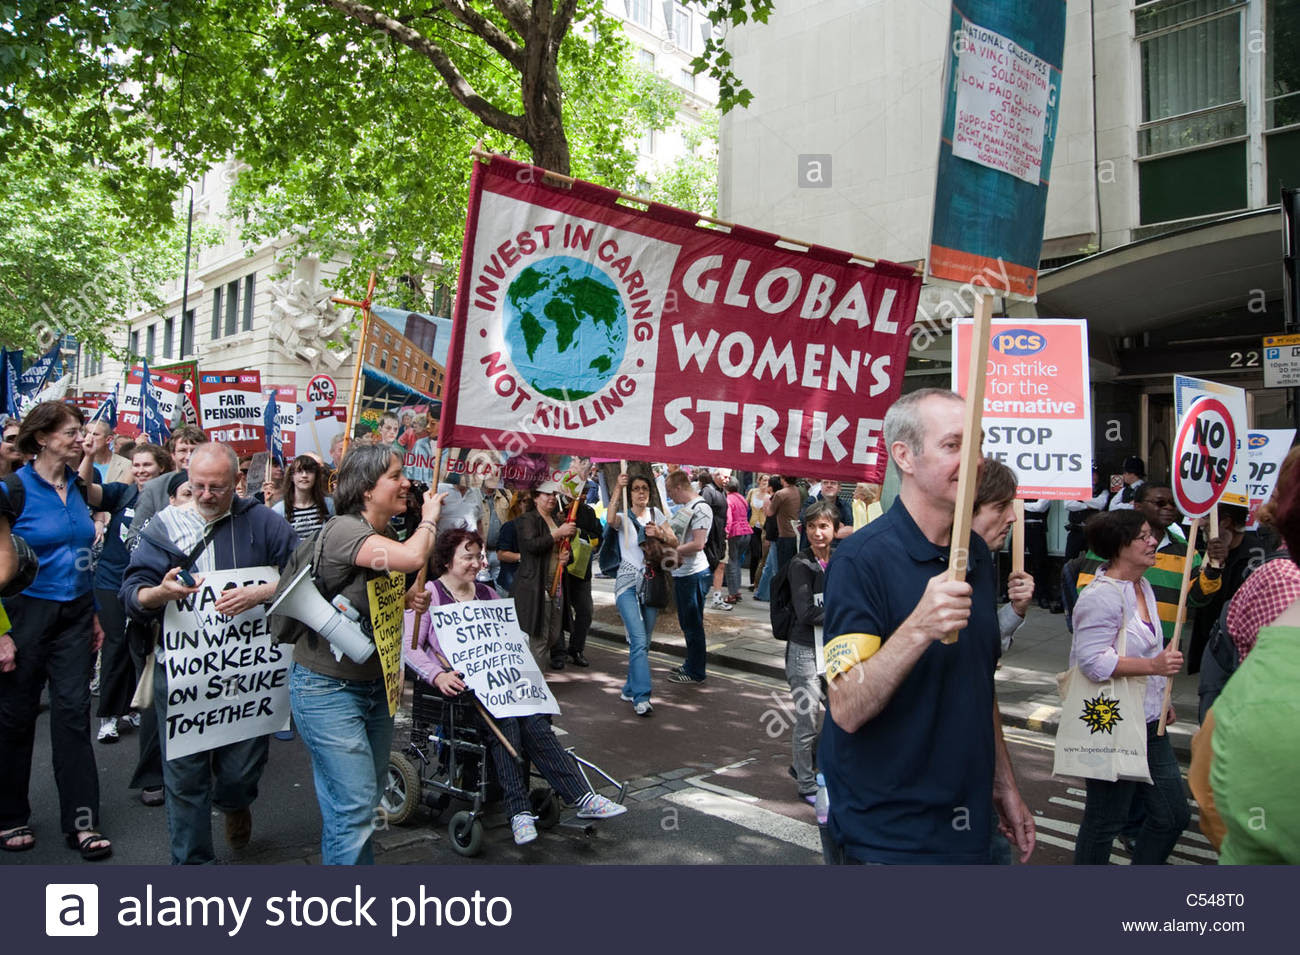 global-womens-strike-on-one-day-strike-by-teachers-and-civil-servants-C548T0.jpg